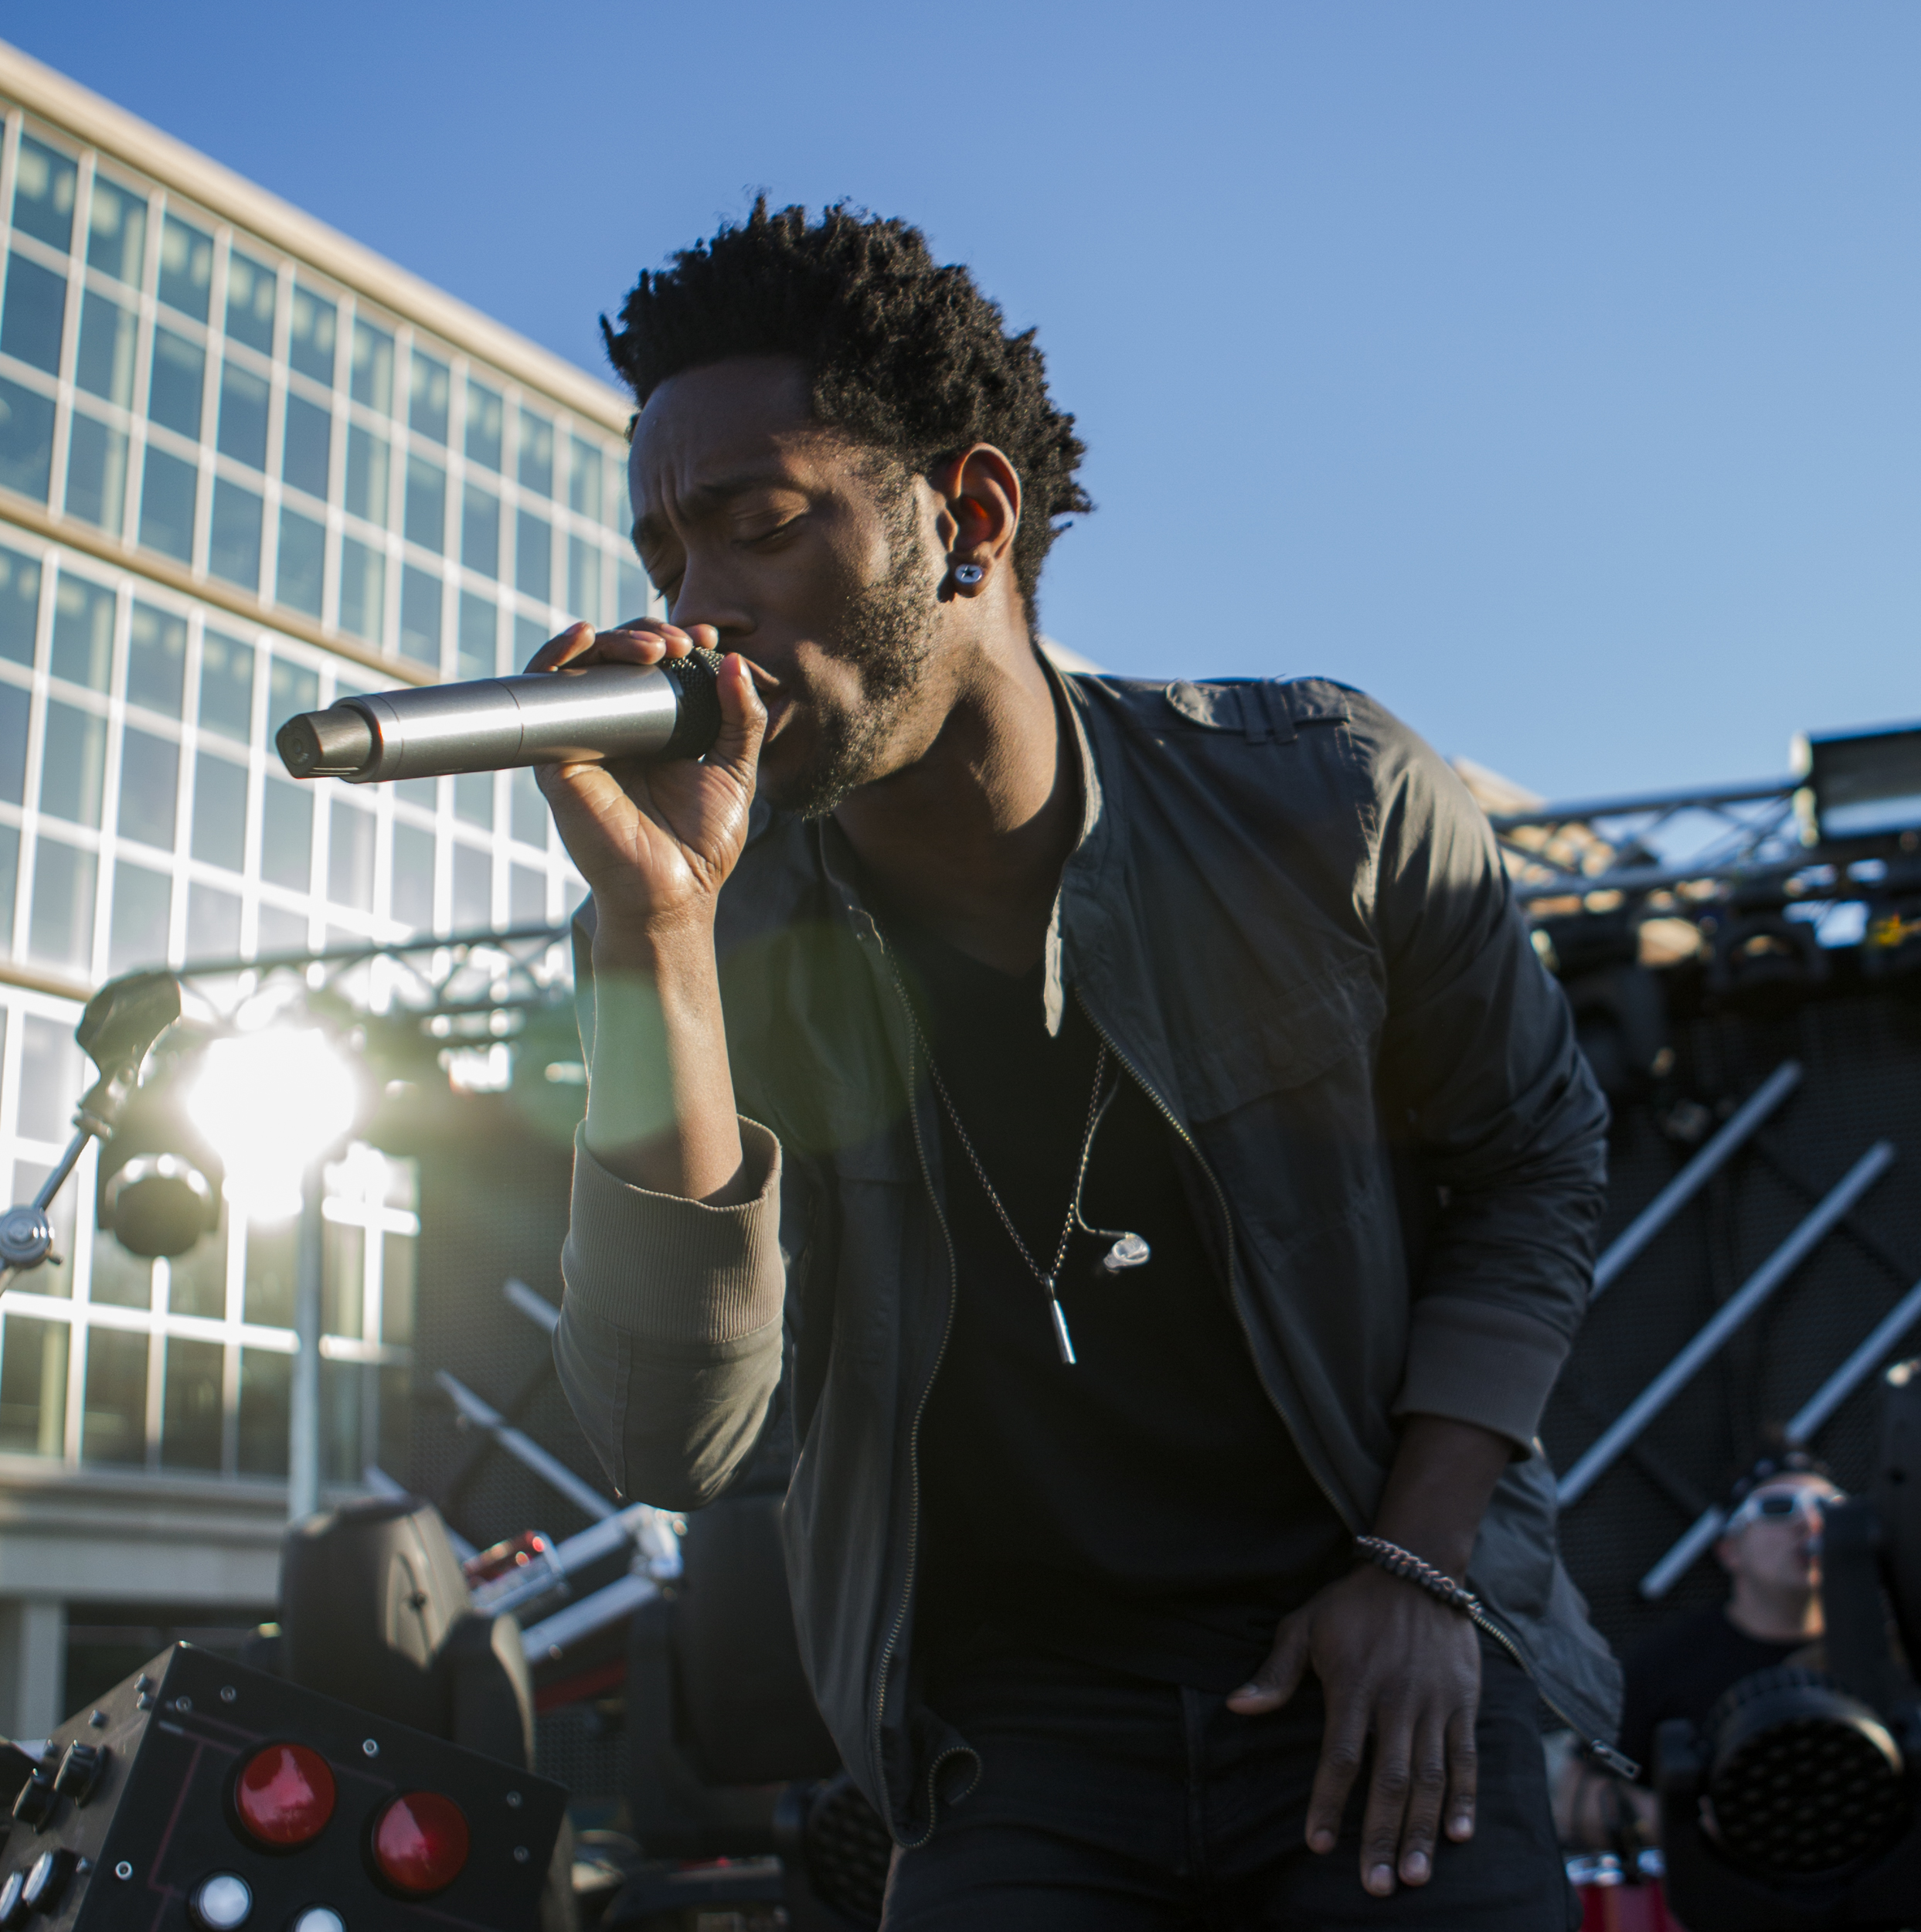 Go Go Gadjet vocalist Rayvon Reed performs with the band on the HUB lawn as part of PSiheartU week on Thursday, April 14, 2016.